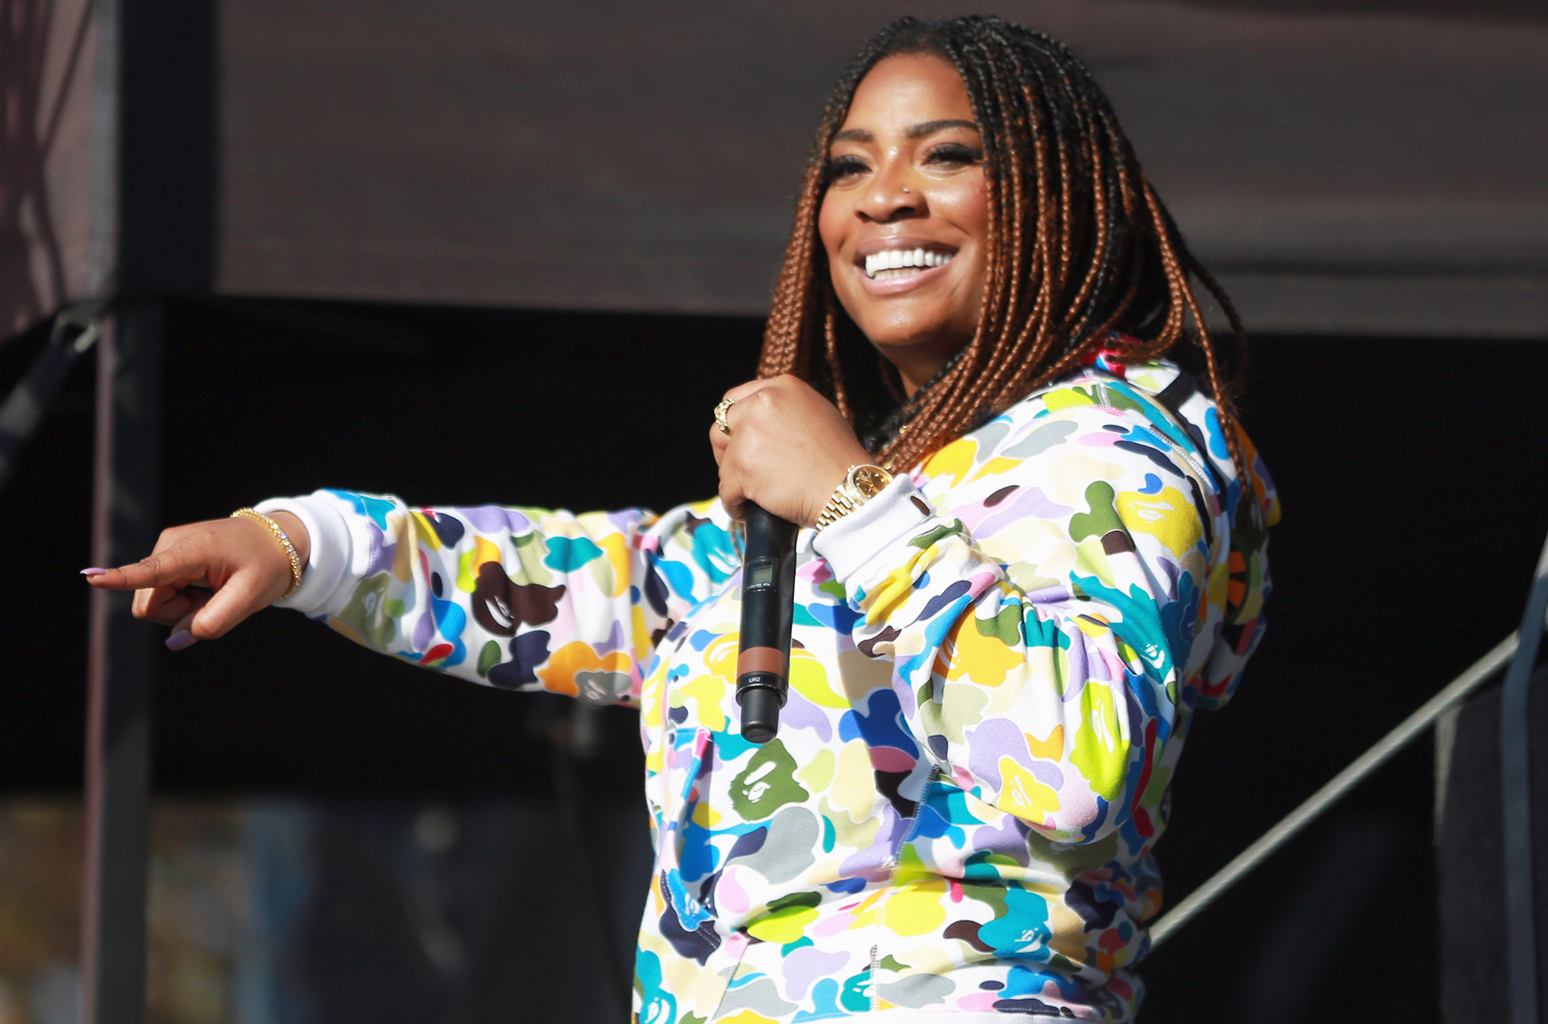 Kamaiyah Talks Sprite 'big Taste Cuts Through' Commercial With Lebron James, Bringing Creativity Back To Hip-hop photo